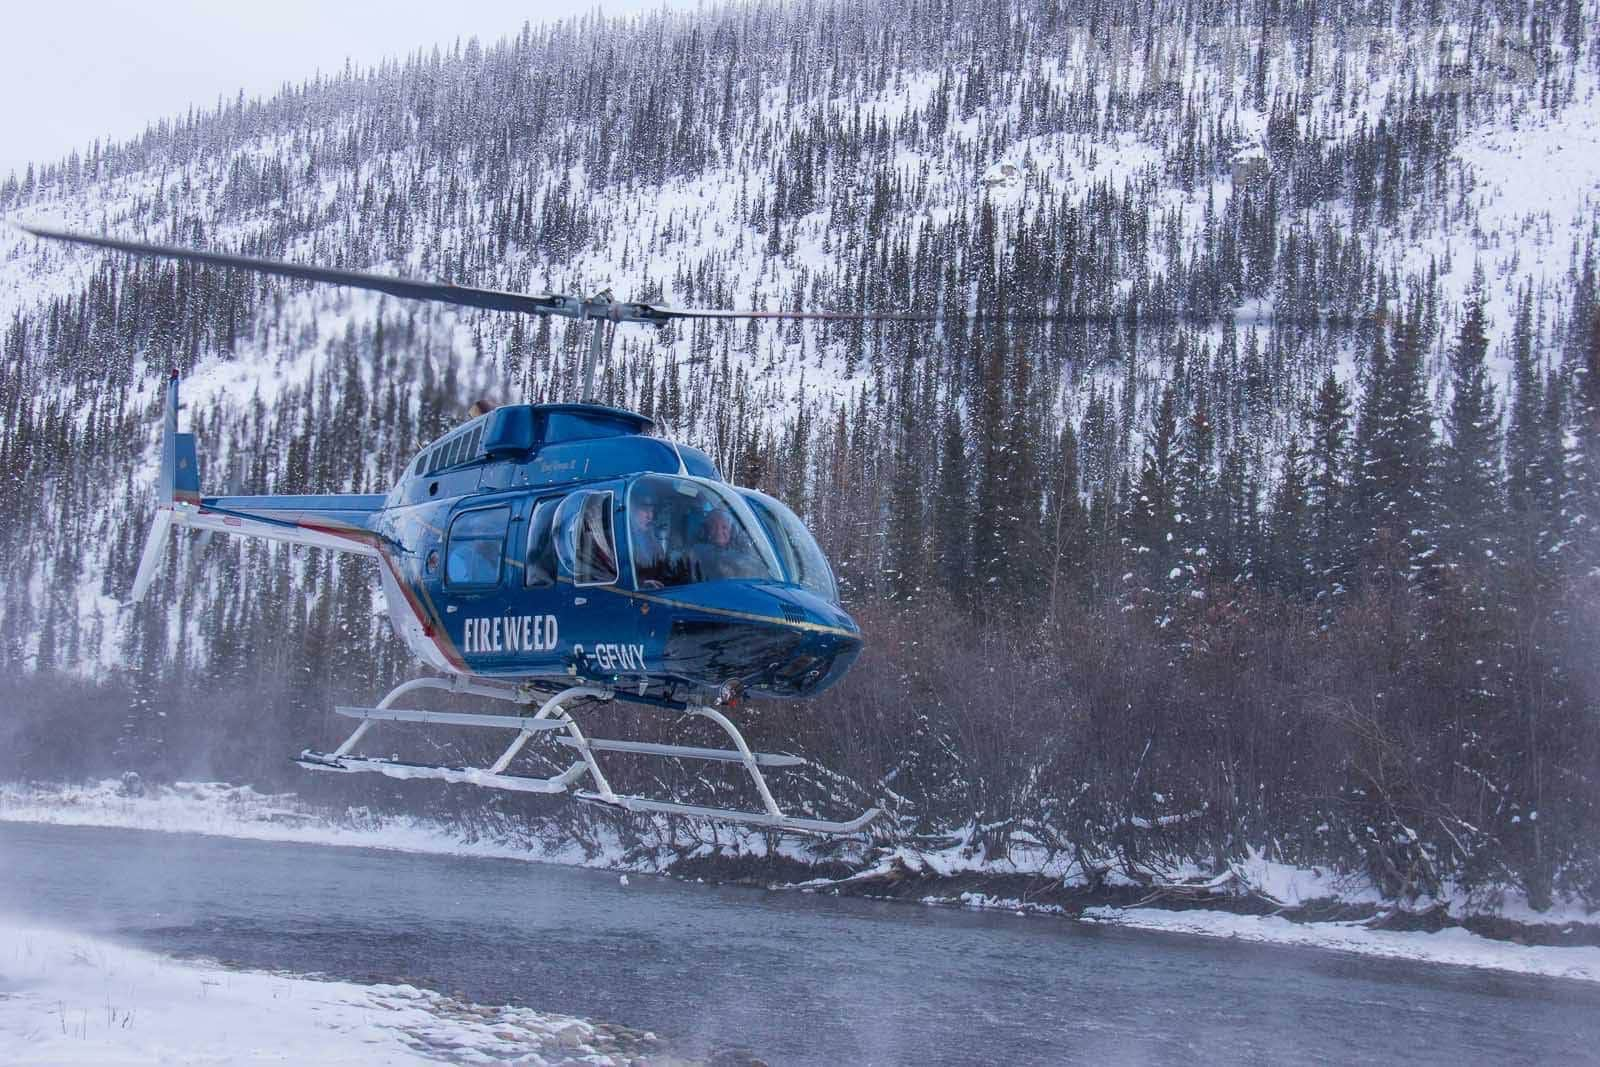 Our Adventure Into The Yukon Is Conducted By Helicopter To Get Both In Typical Of The Kind Of Image That May Be Captured On The NaturesLens Ice Bears Of The Yukon Photographic Holiday